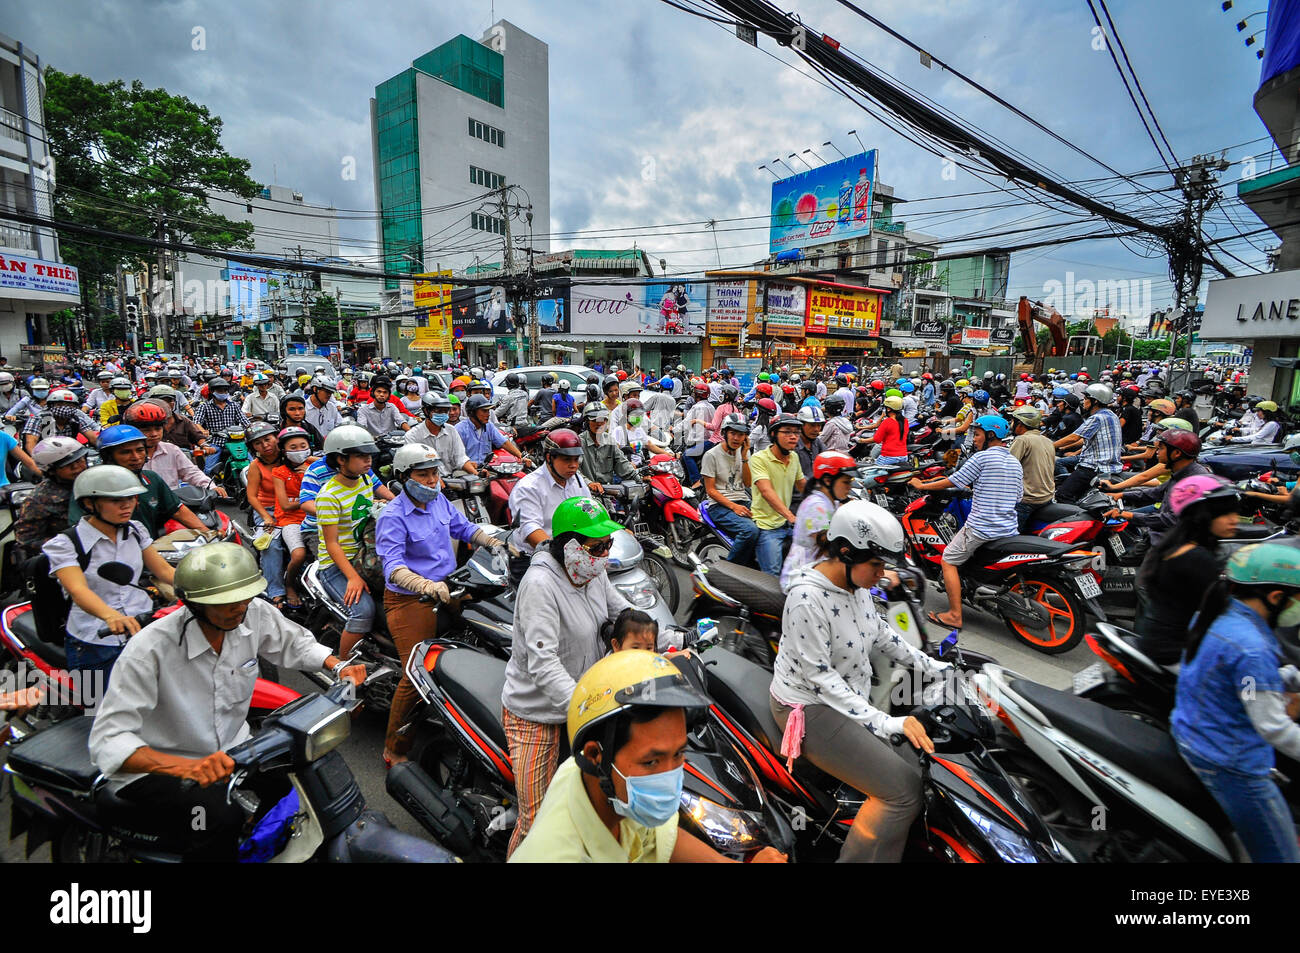 Saigon, Vietnam - June 15: Road Traffic on June 15, 2011 in Saigon (Ho Chi Minh City), Vietnam. Ho Chi Minh is the - Stock Image